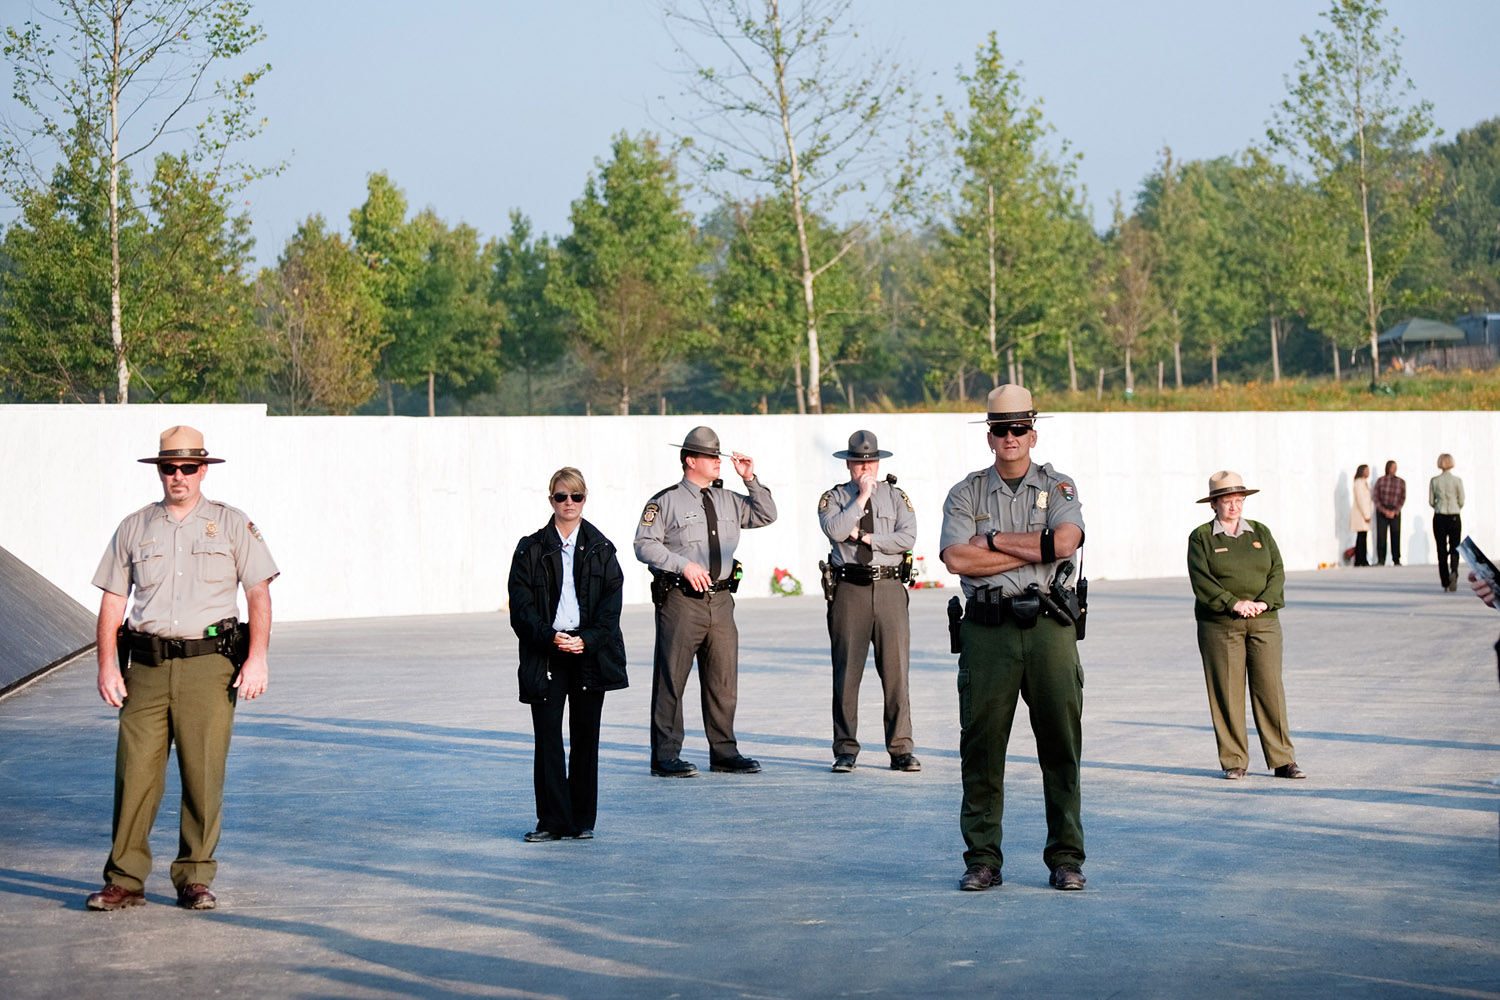 Local authorities stand guard at the Flight 93 National Memorial during the 10th anniversary of the terrorist attacks, Shanksville, Pa., Sept. 11, 2011.